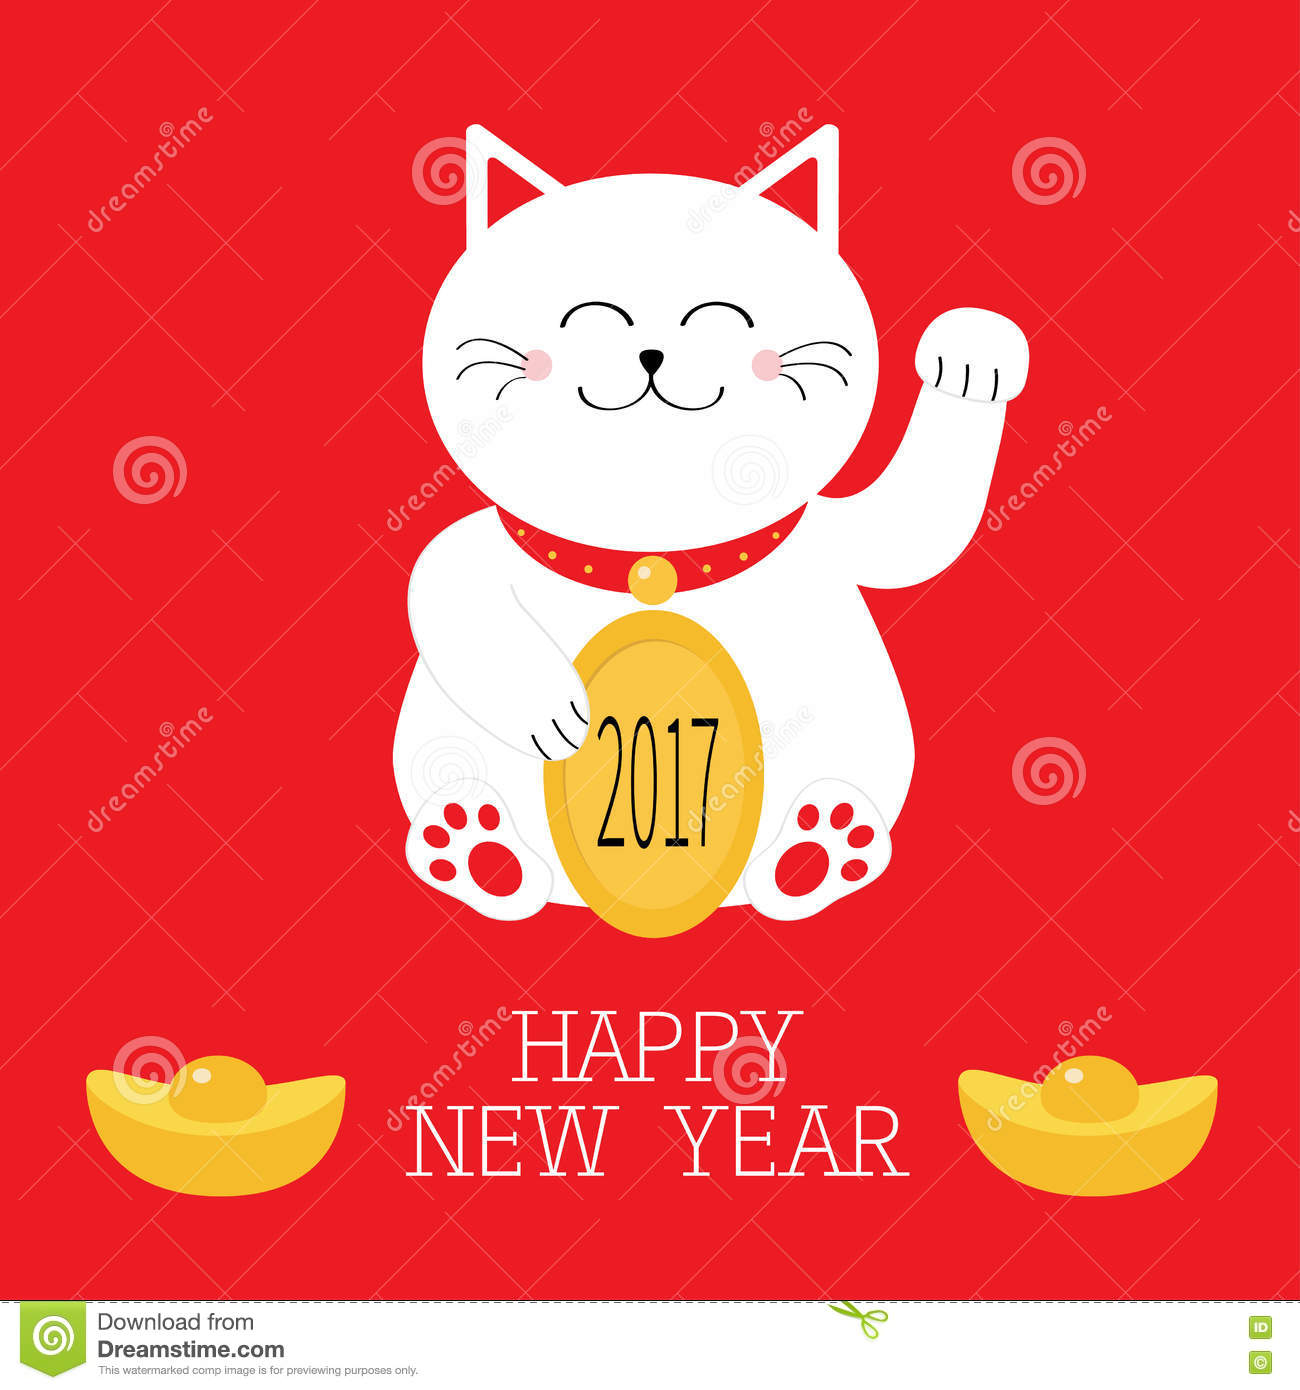 happy new year lucky white cat sitting and holding golden coin 2017 text chinese